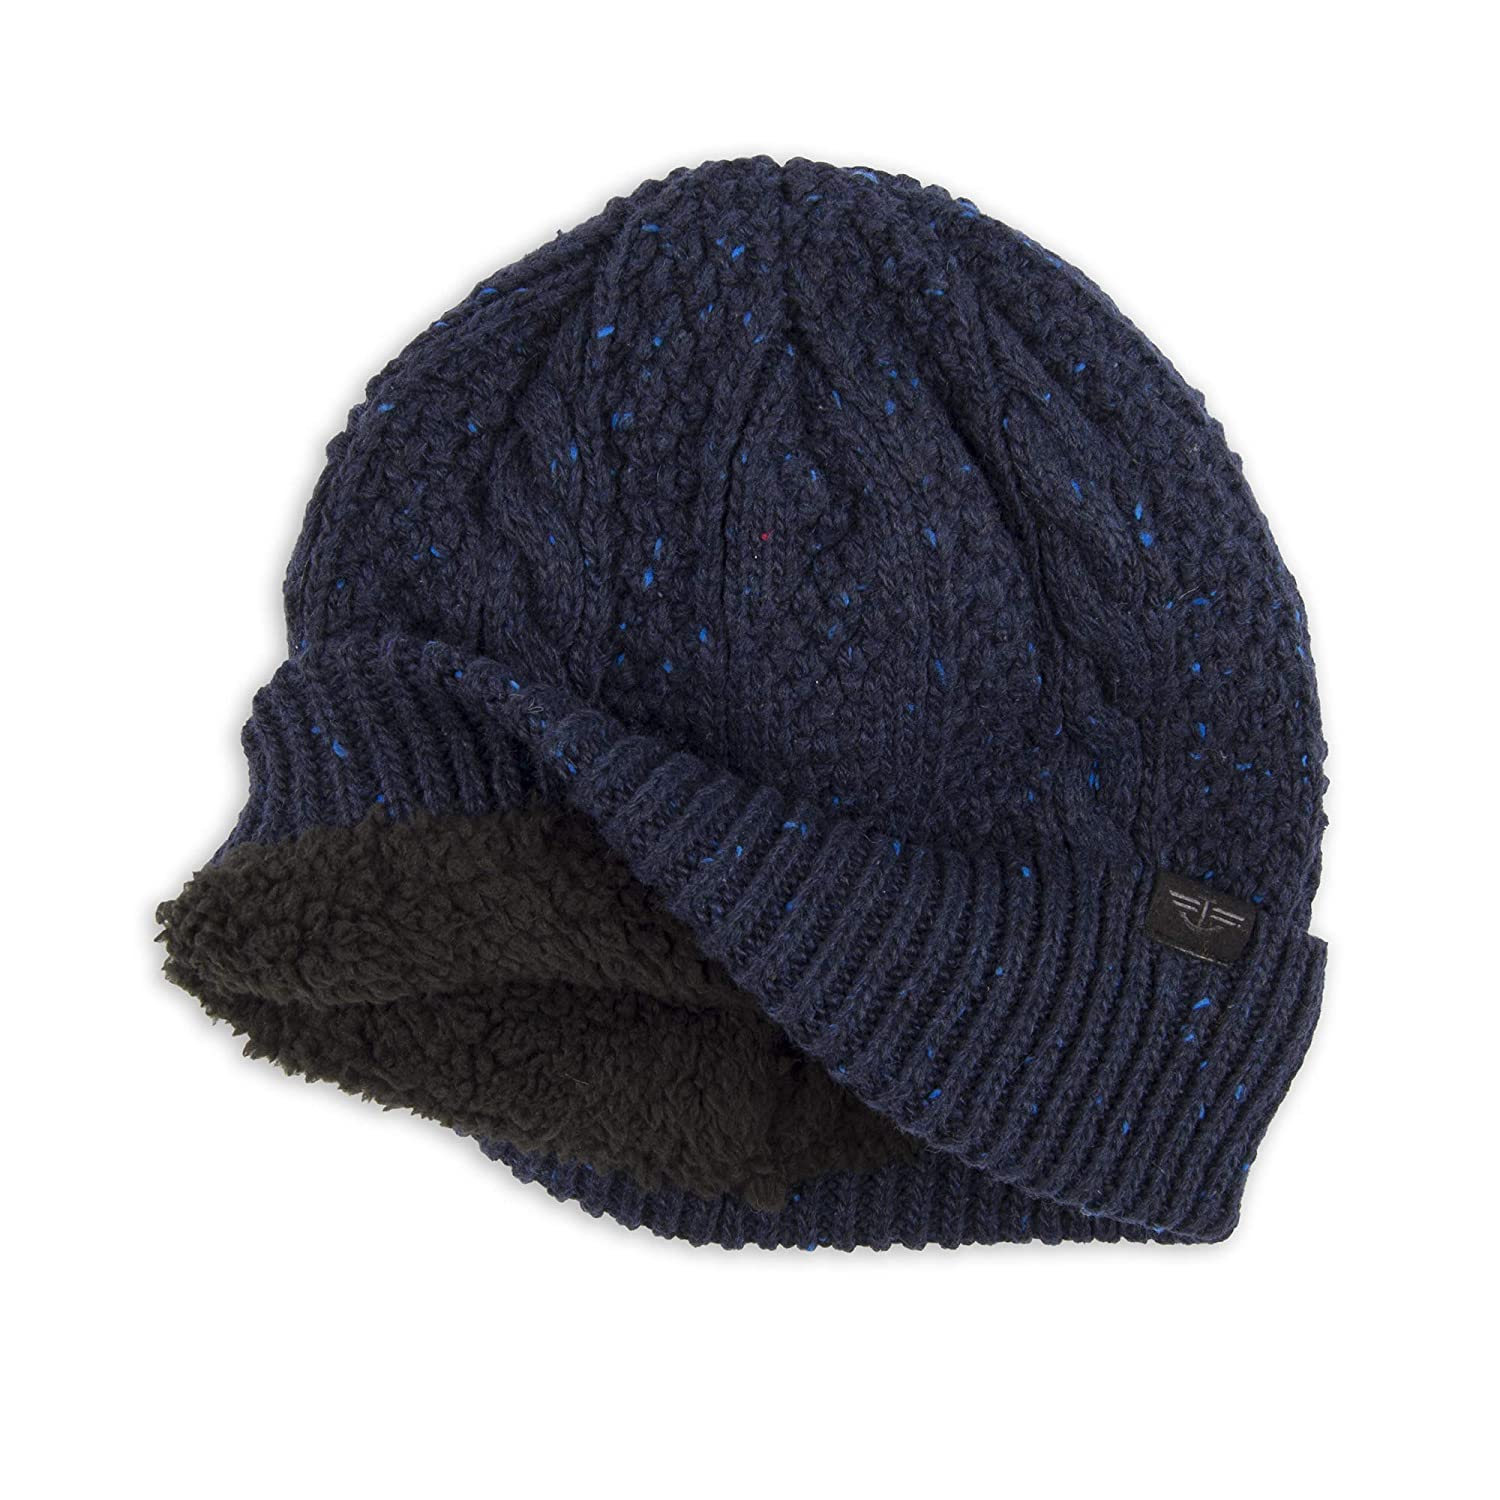 5f7ecf235f022 Dockers Men s Cable Knit Beanie Hat